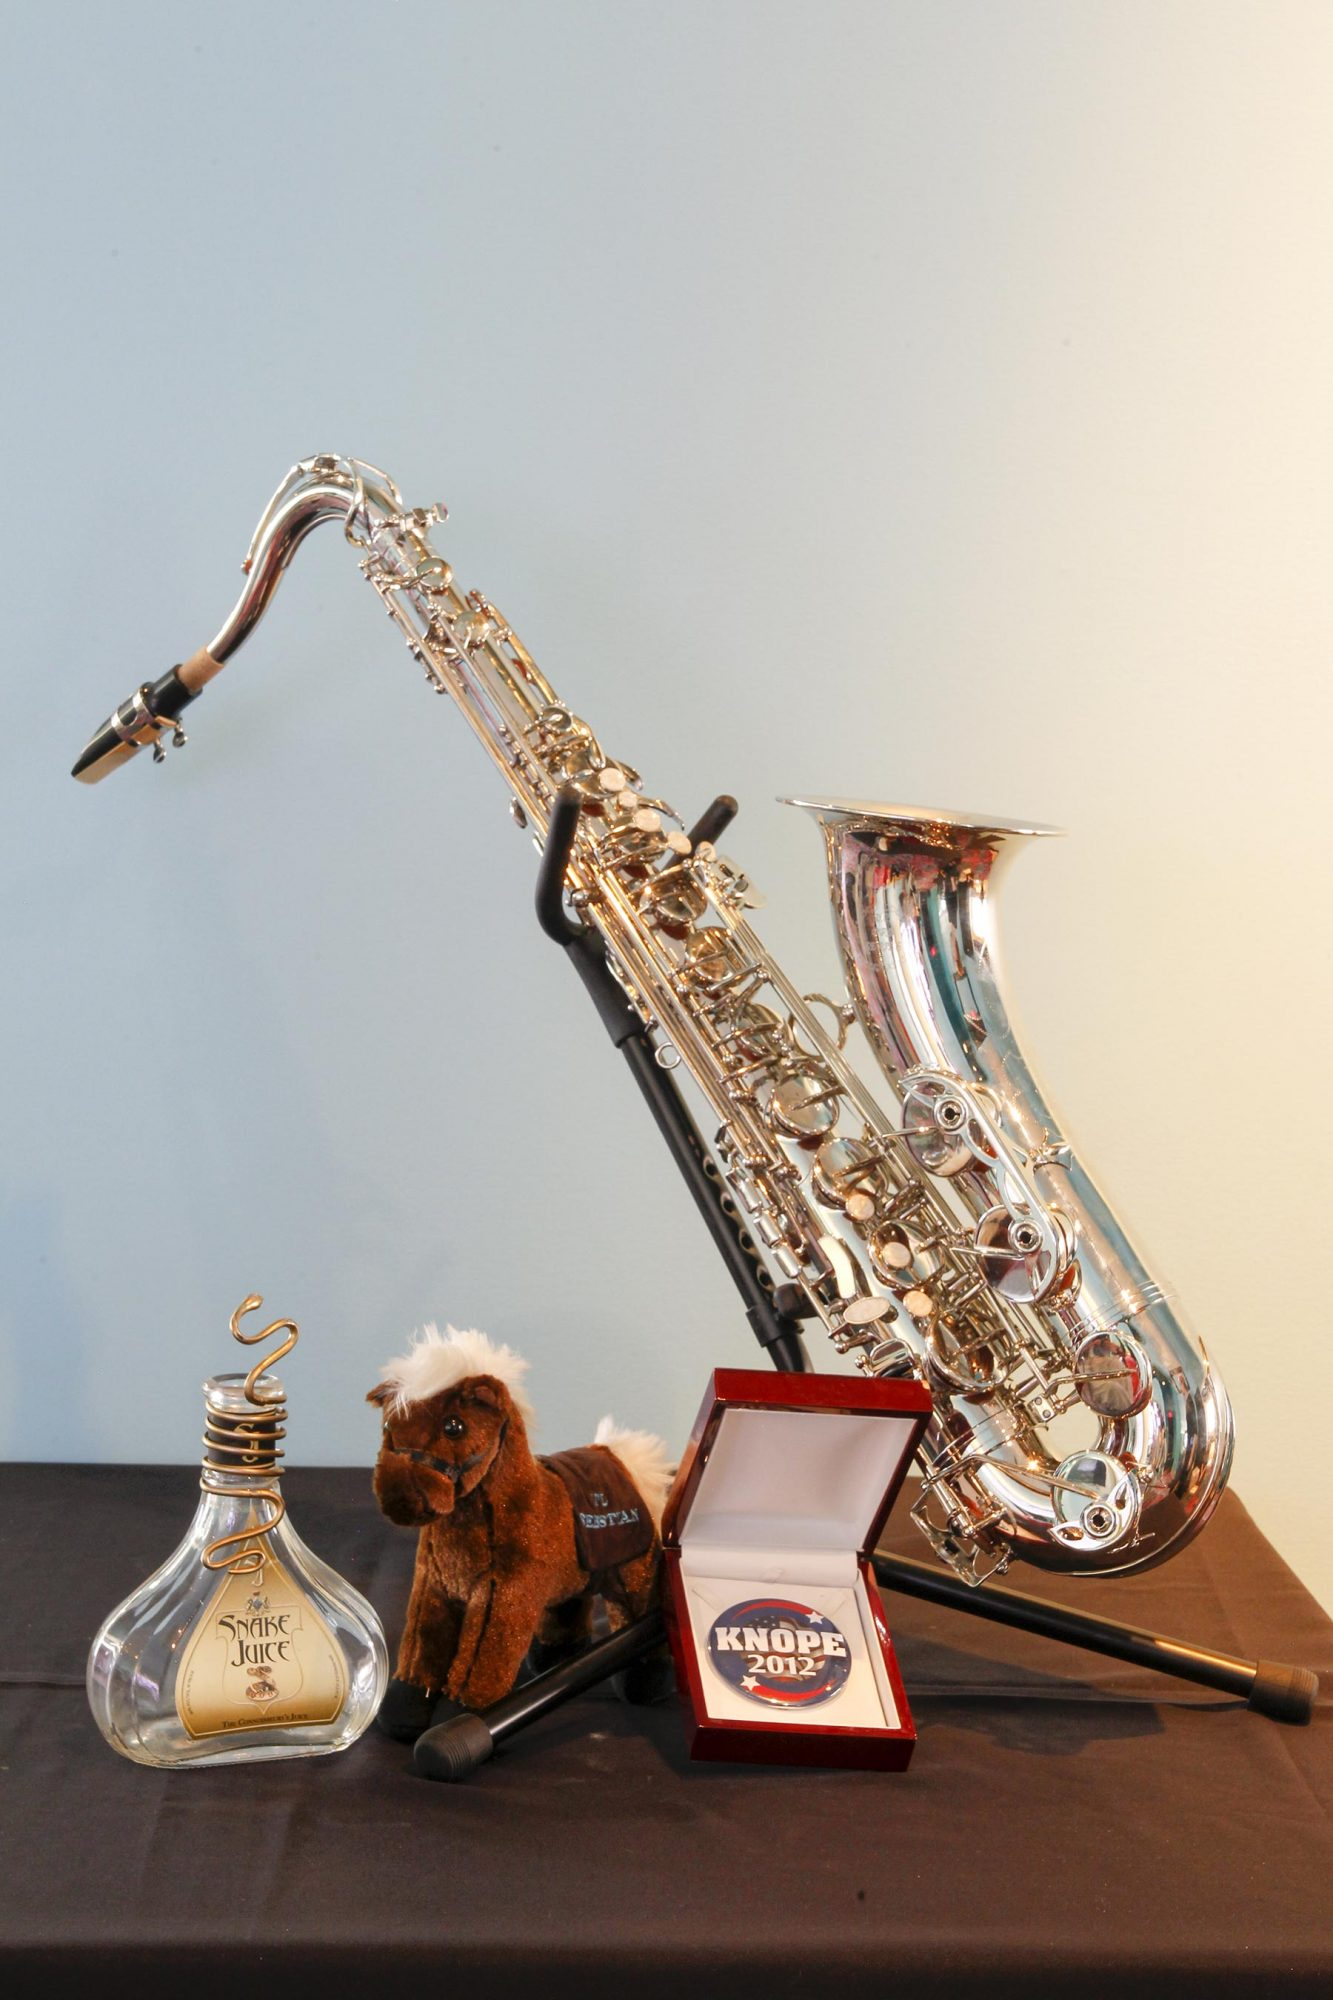 Duke Silver's (Nick Offerman) saxophone from Parks and Recreation